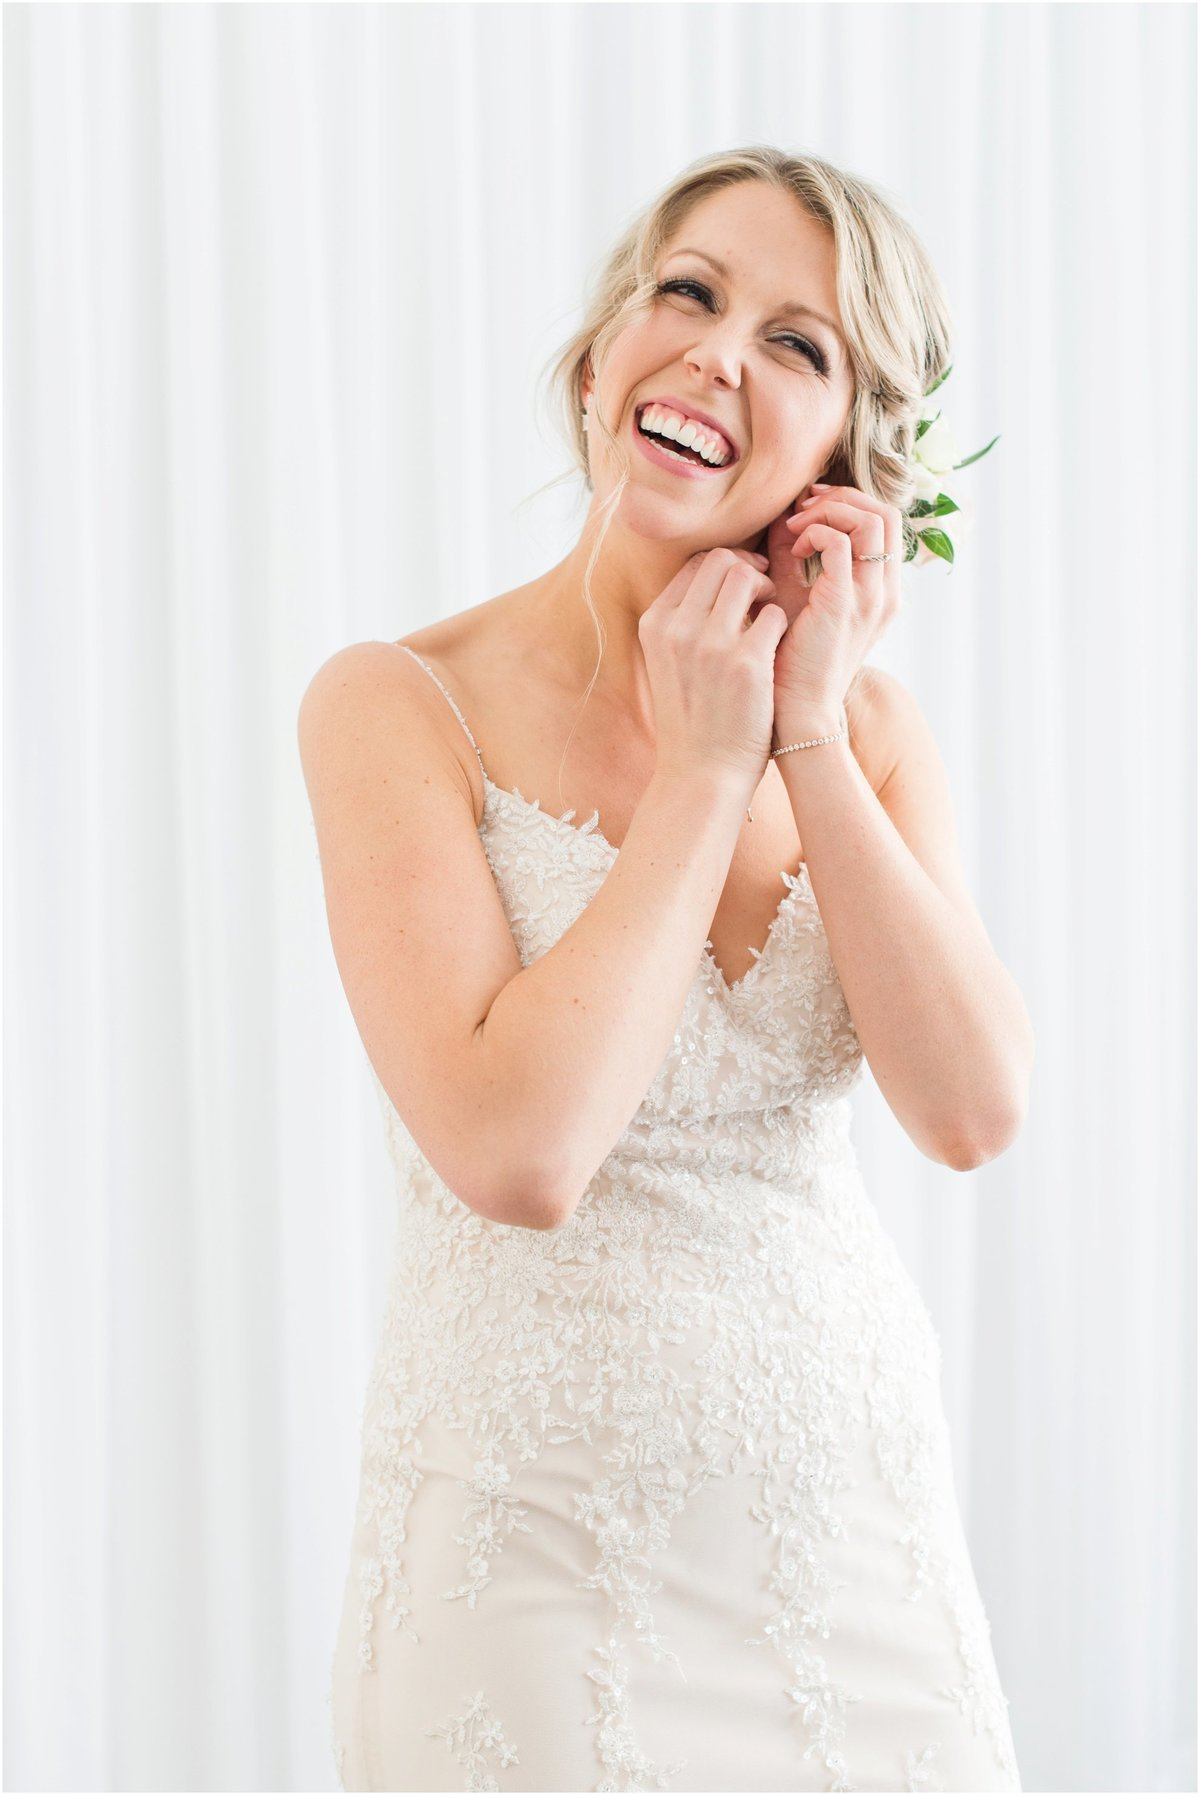 Bride putting on earring laughing